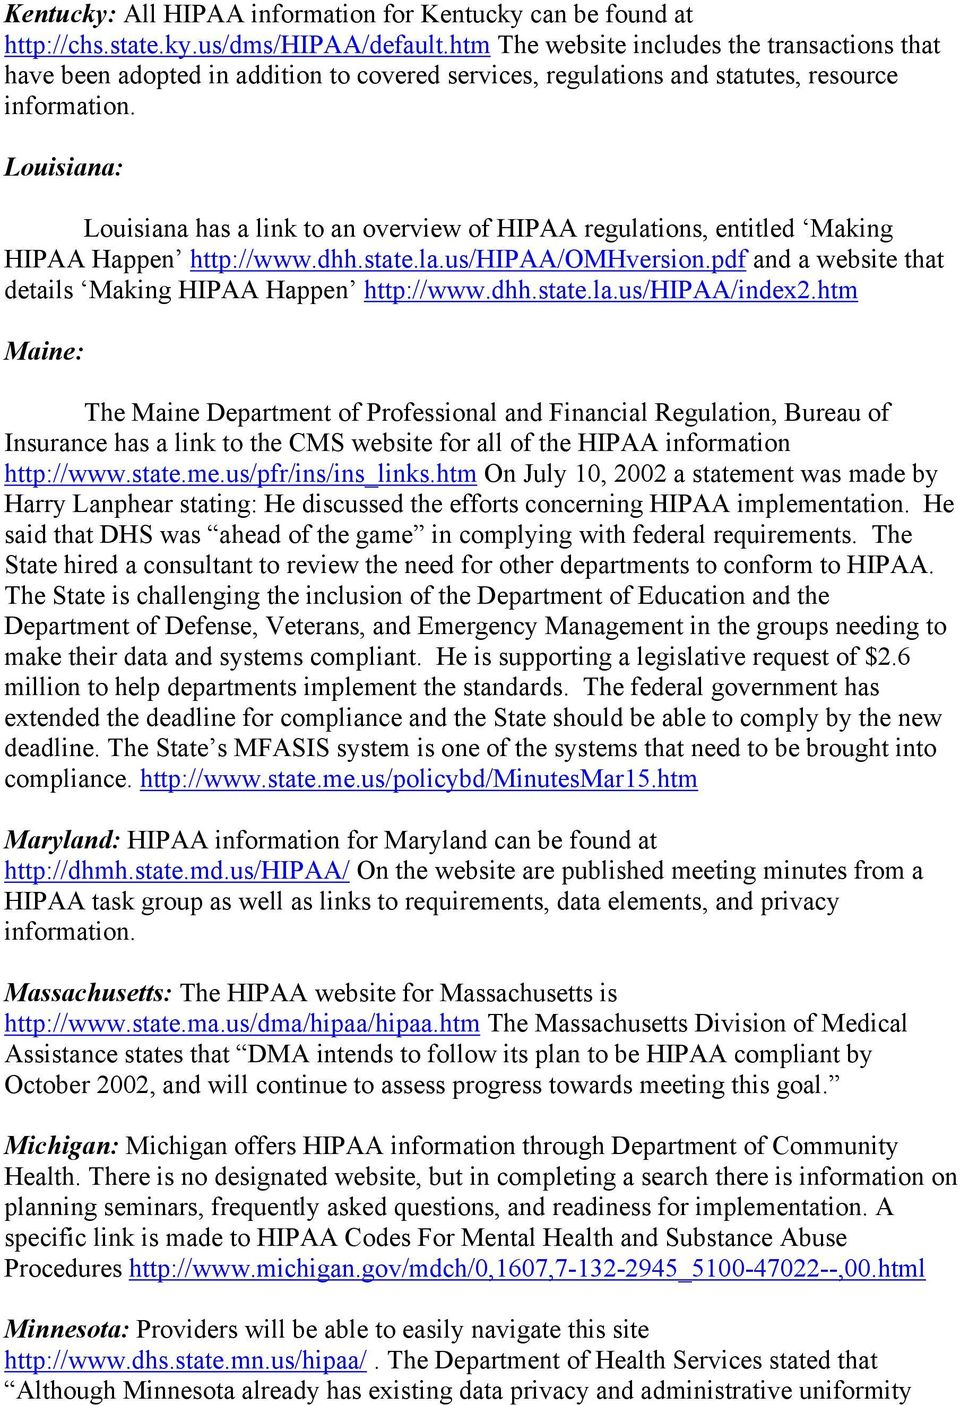 Louisiana: Louisiana has a link to an overview of HIPAA regulations, entitled Making HIPAA Happen http://www.dhh.state.la.us/hipaa/omhversion.